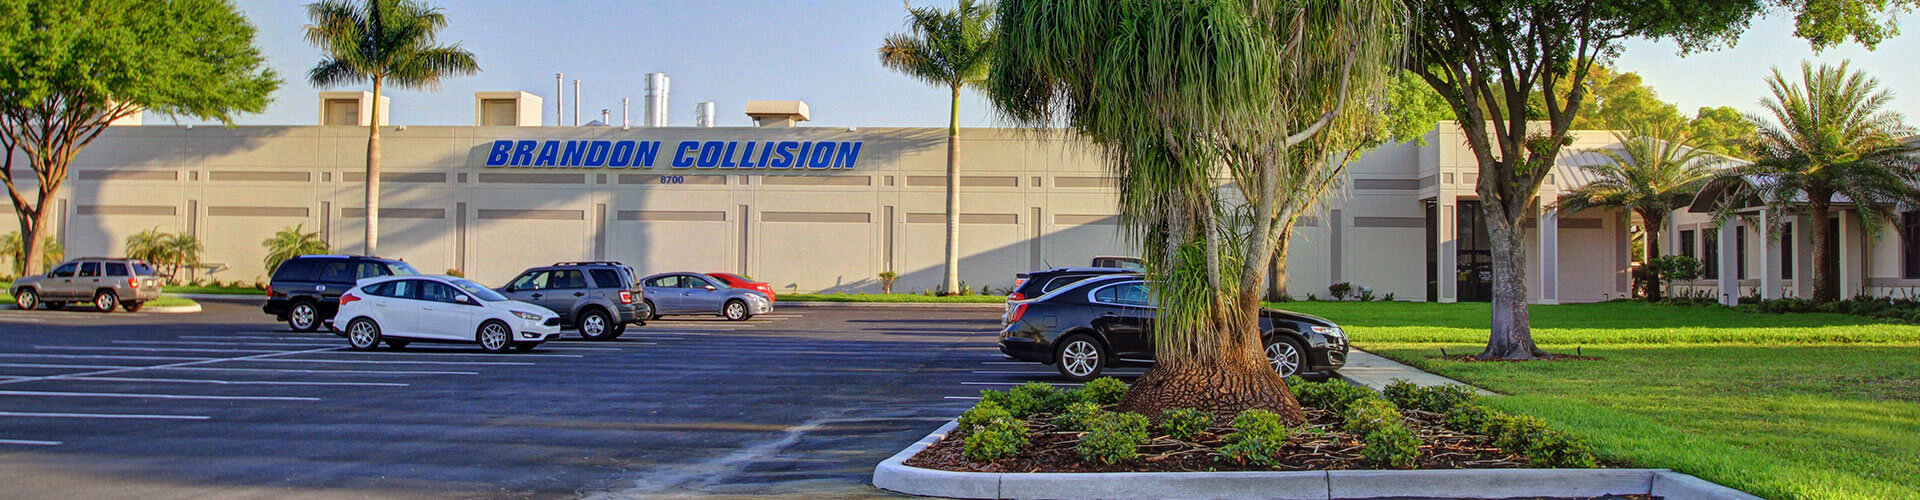 View Brandon Collision Banner image